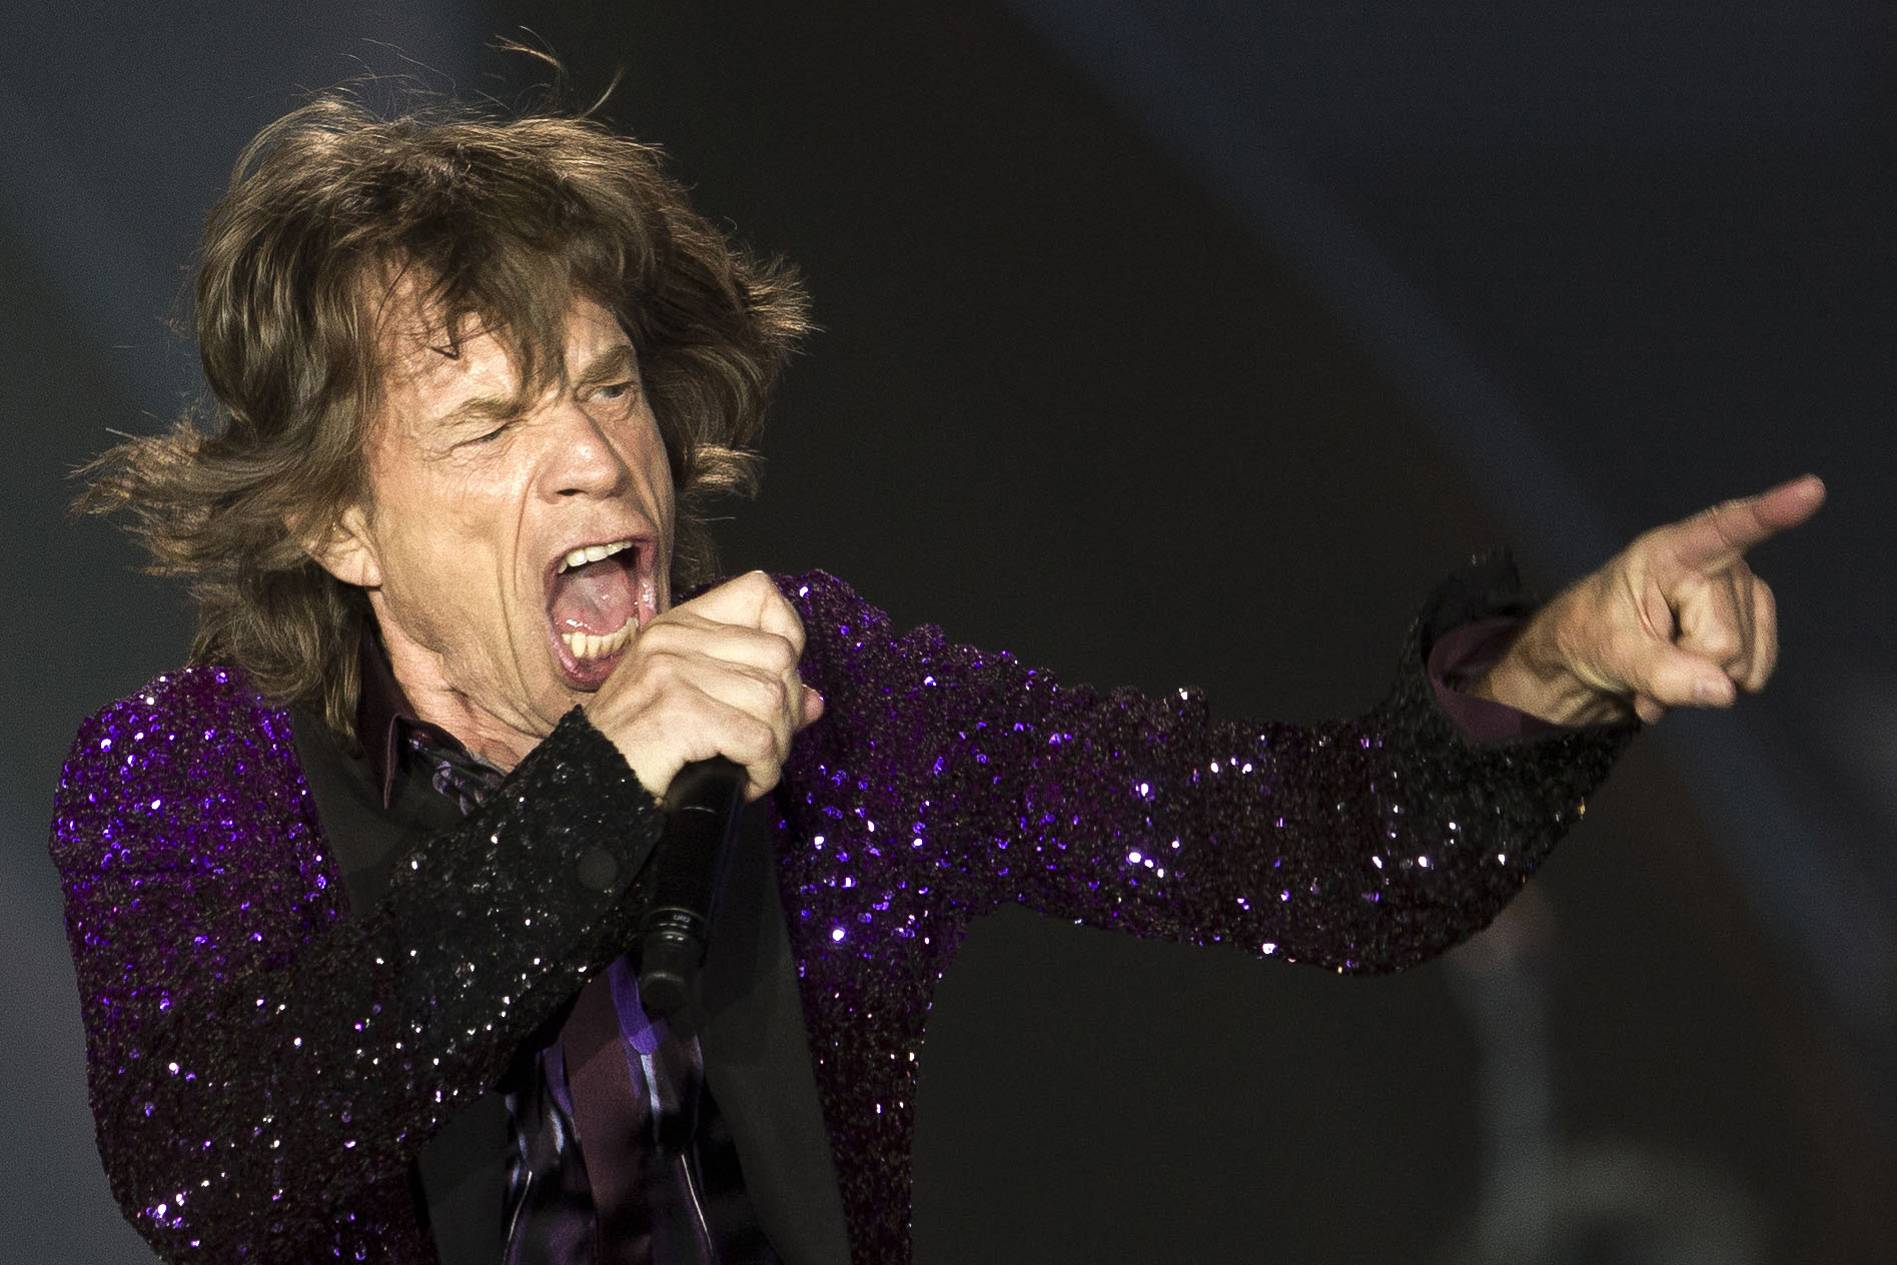 Brazil mocks Mick Jagger as World Cup jinx